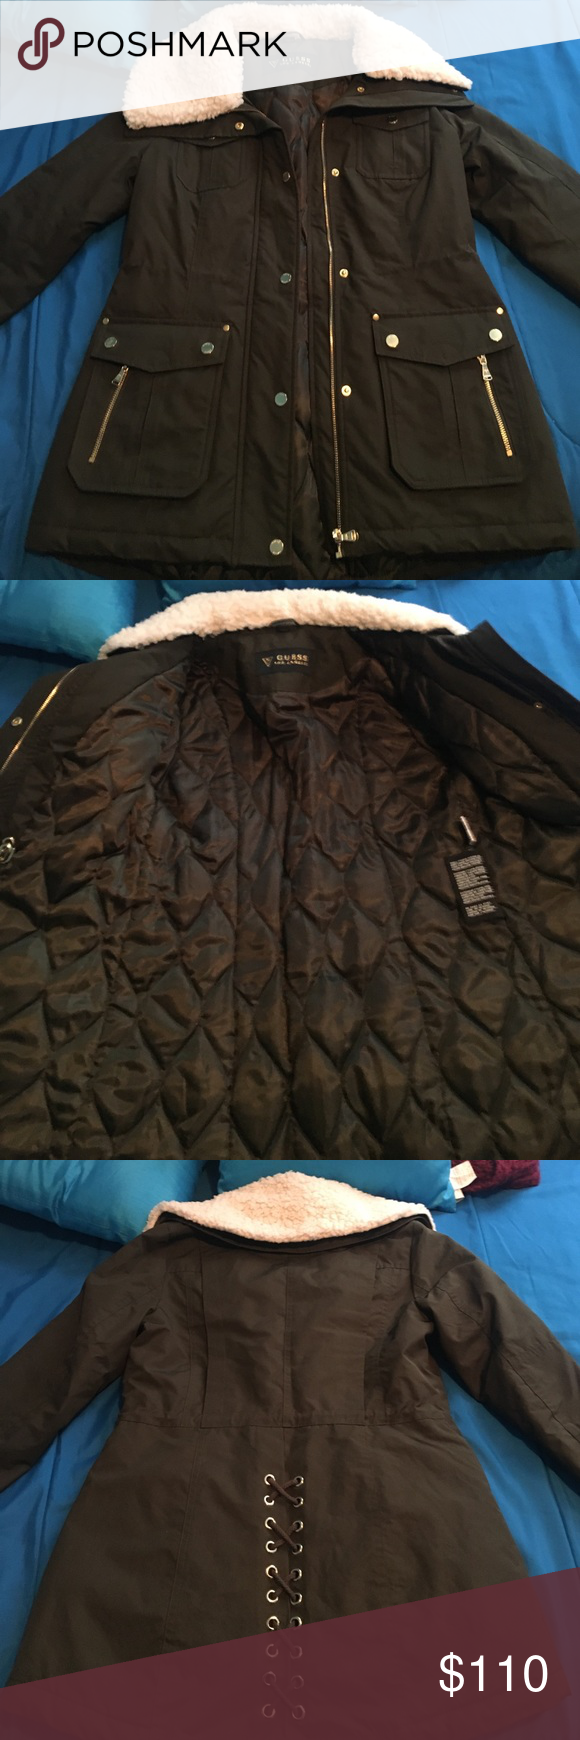 Guess winter jacket XS/S Great condition winter jacket haven't worn because of the wrong SZ Guess Jackets & Coats